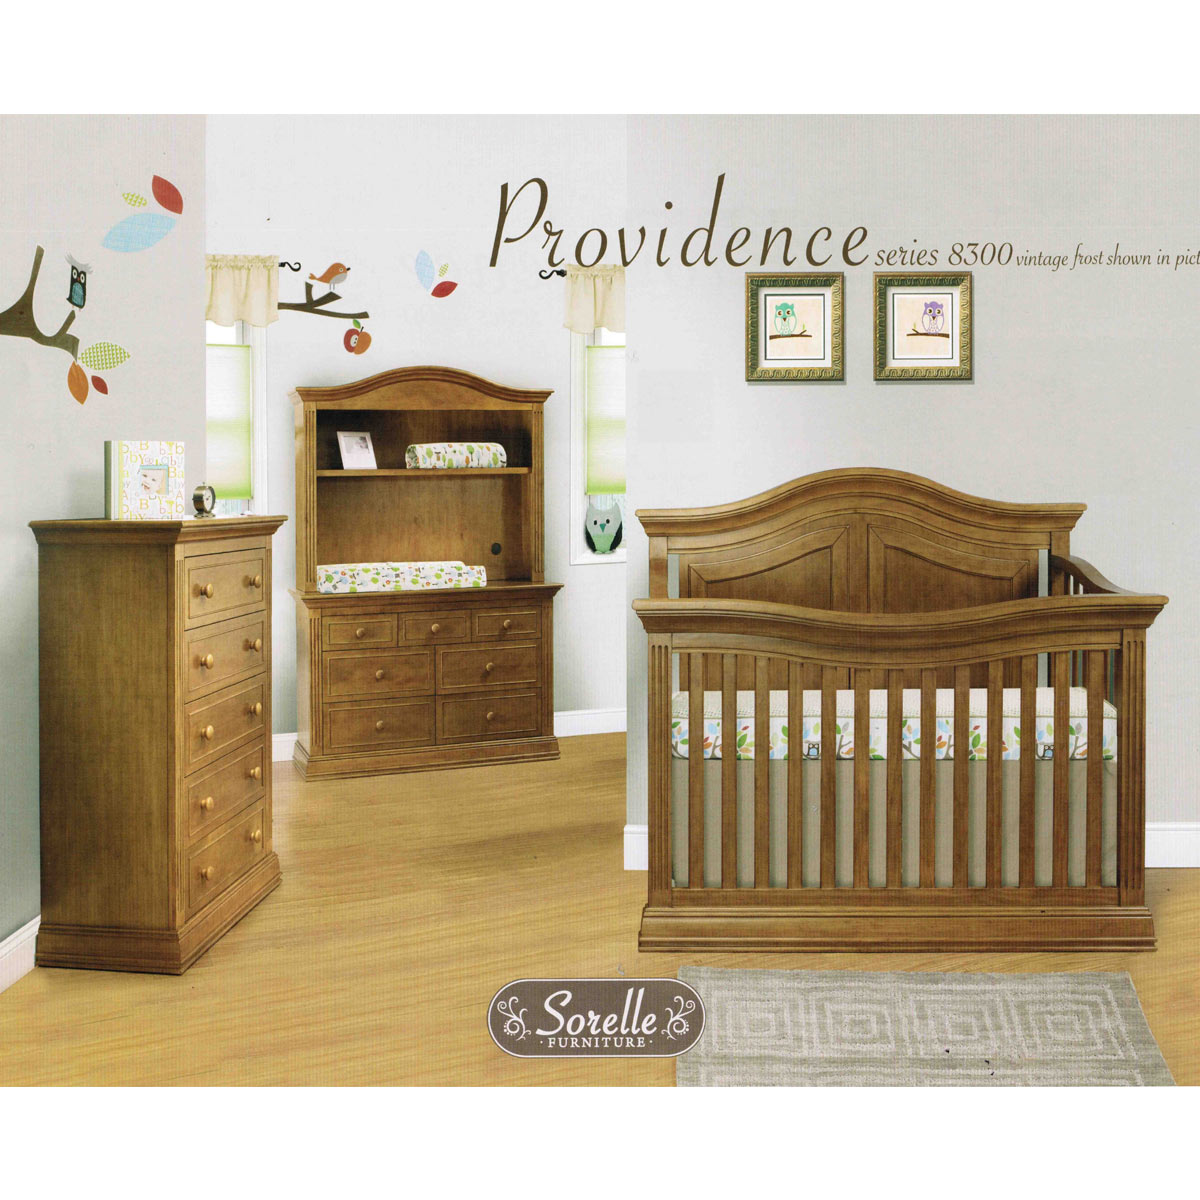 Sorelle Providence 4 In 1 Convertible Crib In Vintage Frost FREE SHIPPING